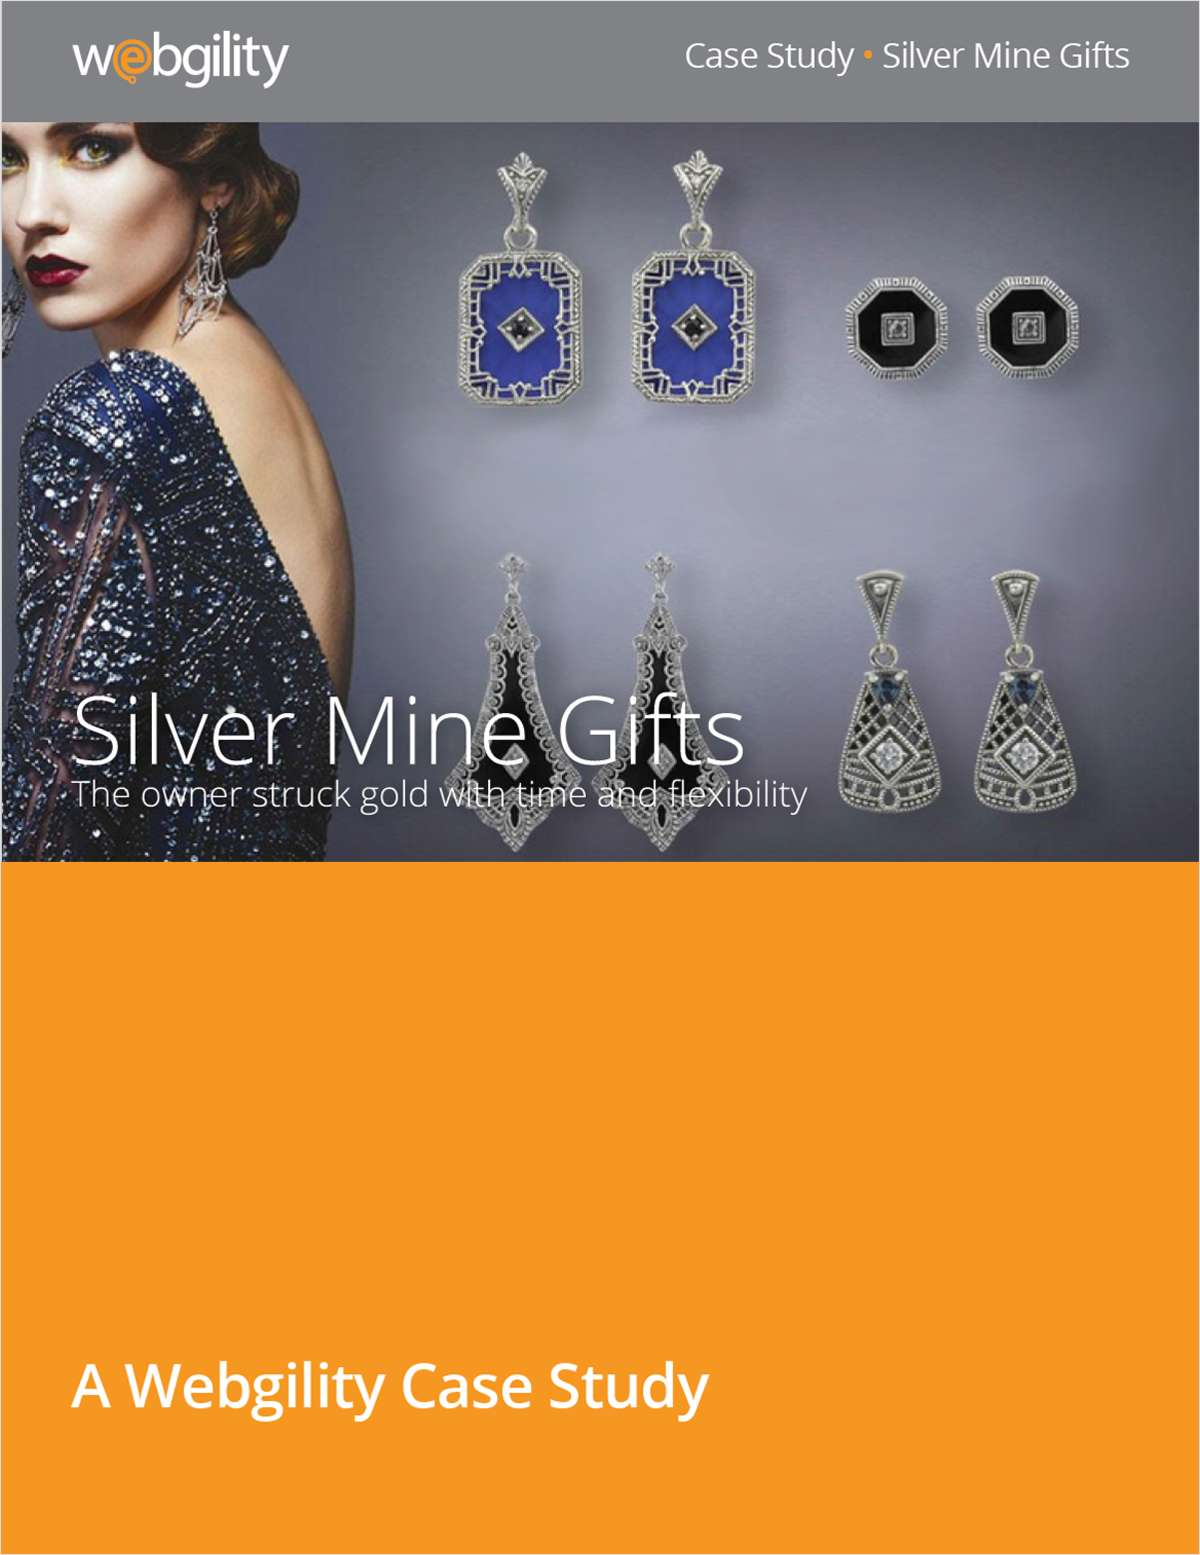 Silver Mine Gifts Case Study: The Owner Struck Gold With Time And Flexibility